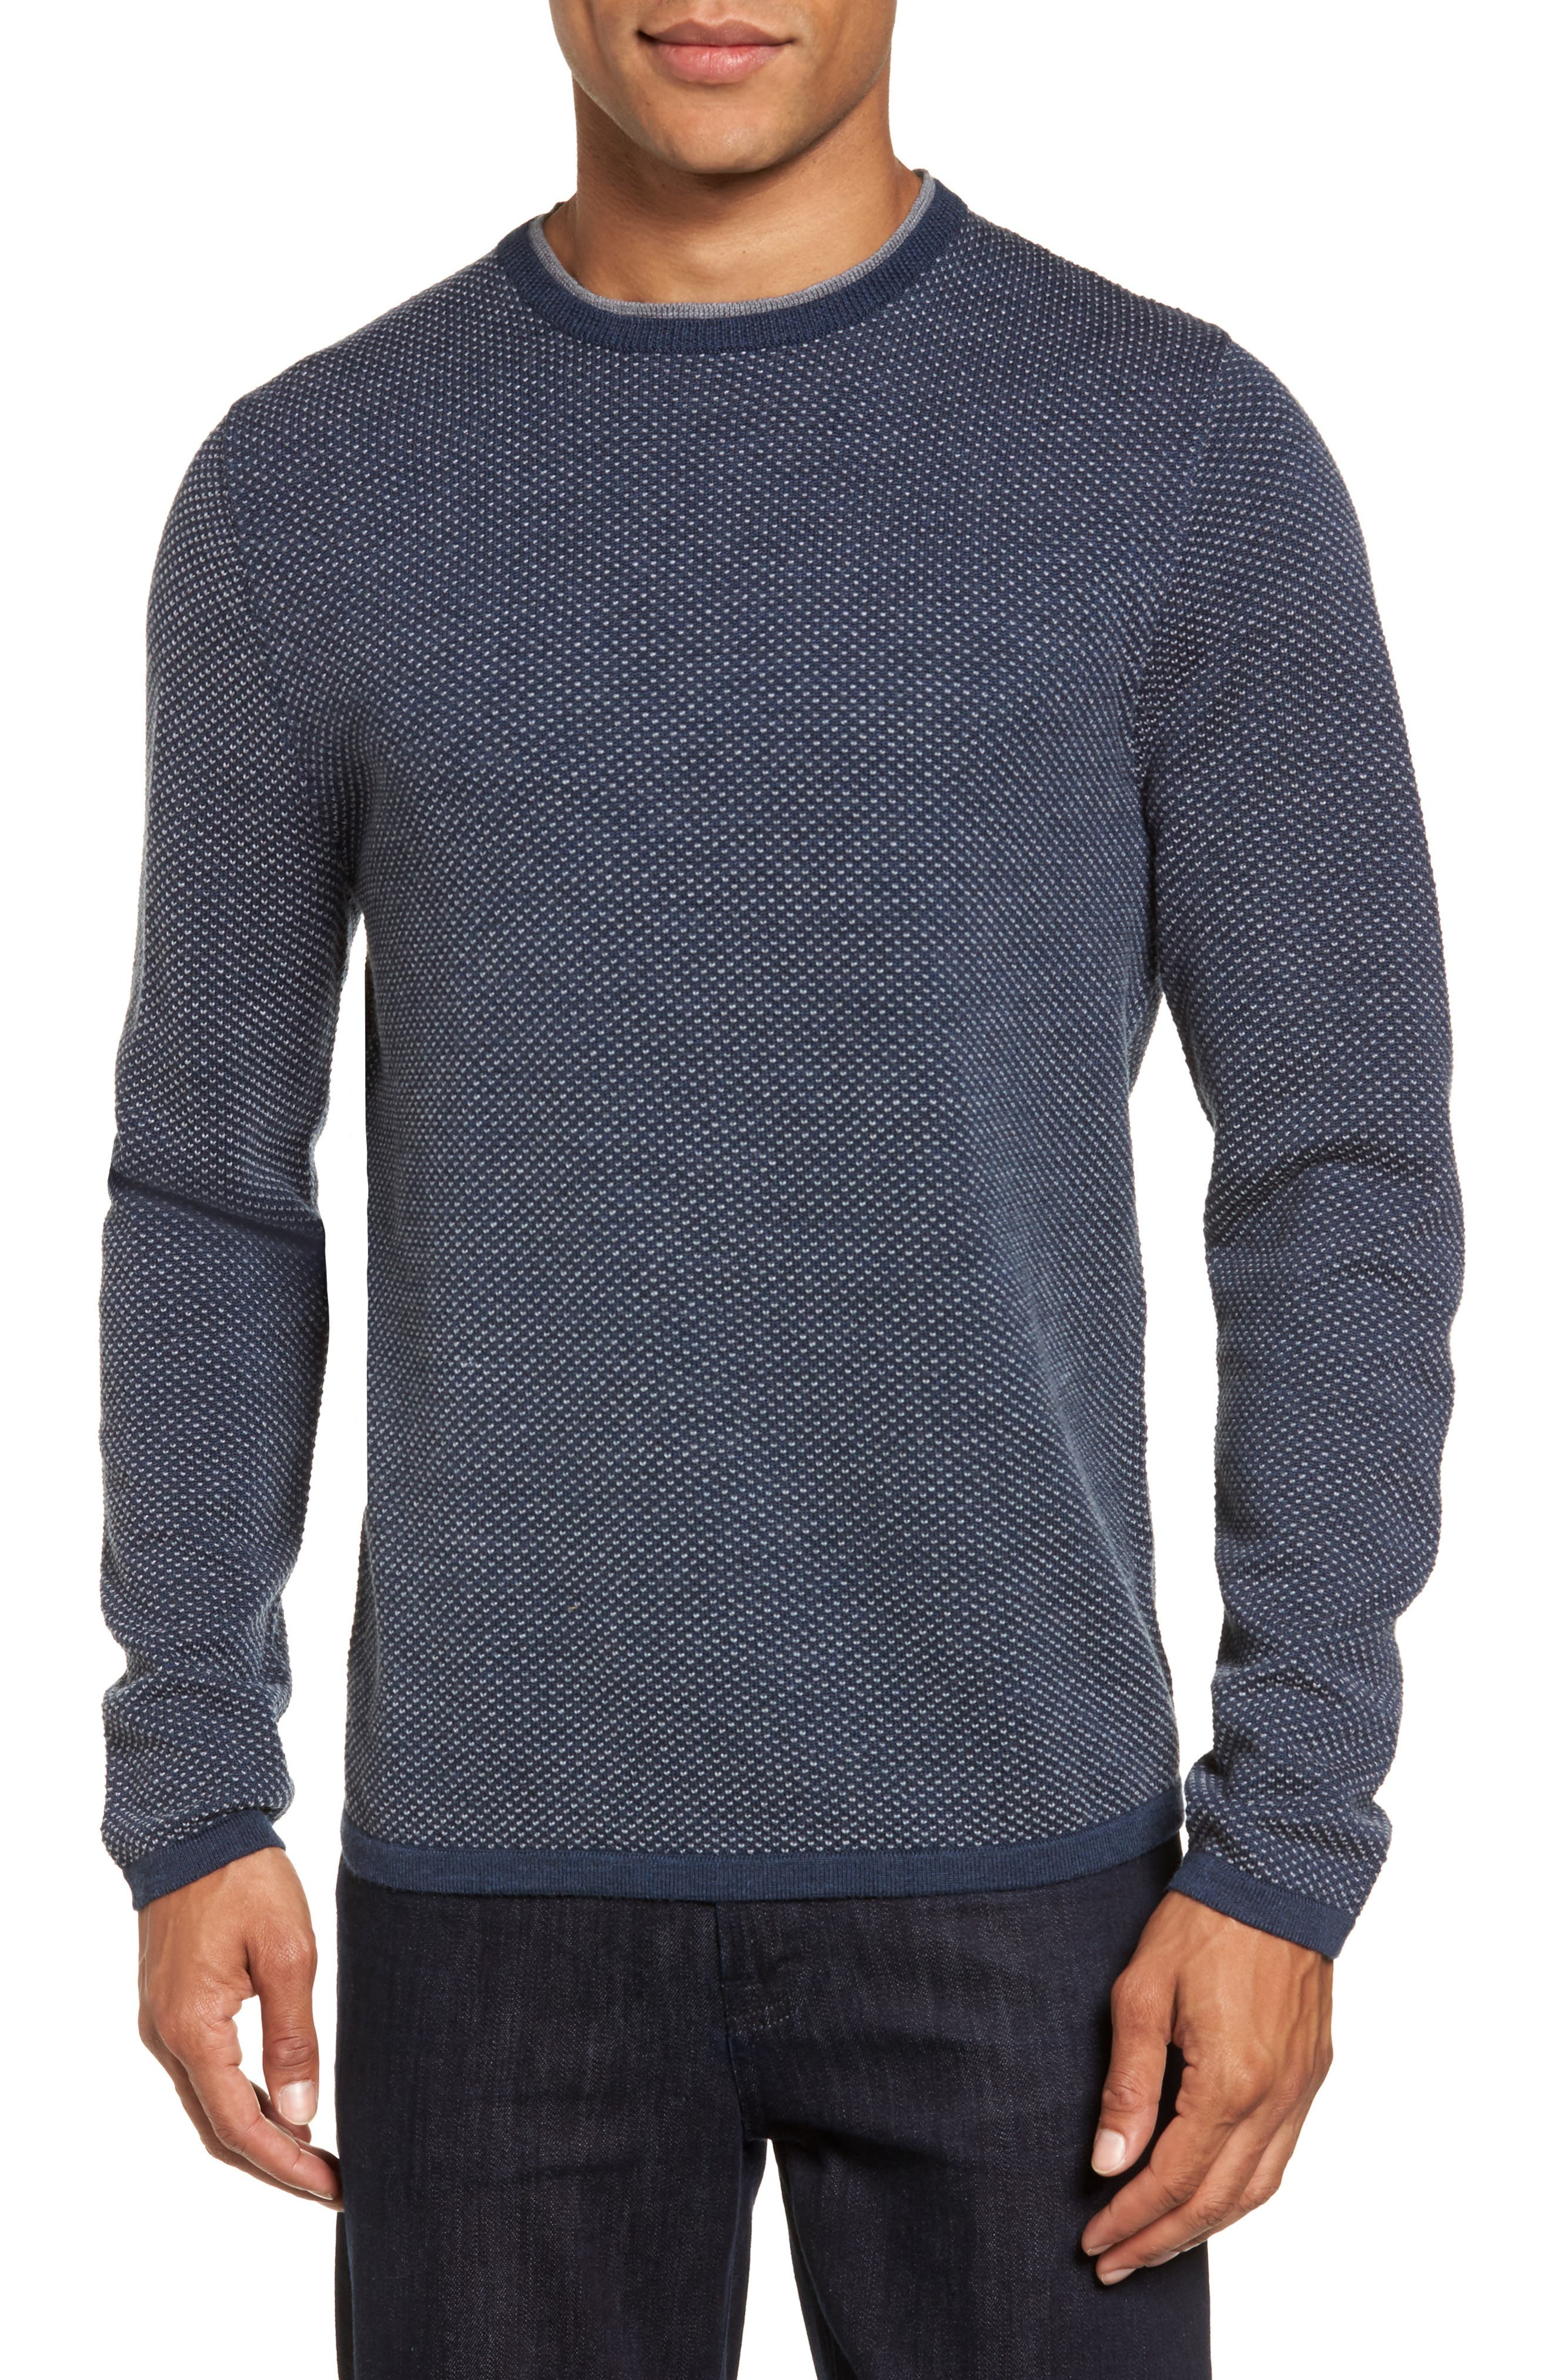 Nordstrom Men's Shop Crewneck Knit Sweater (Tall)